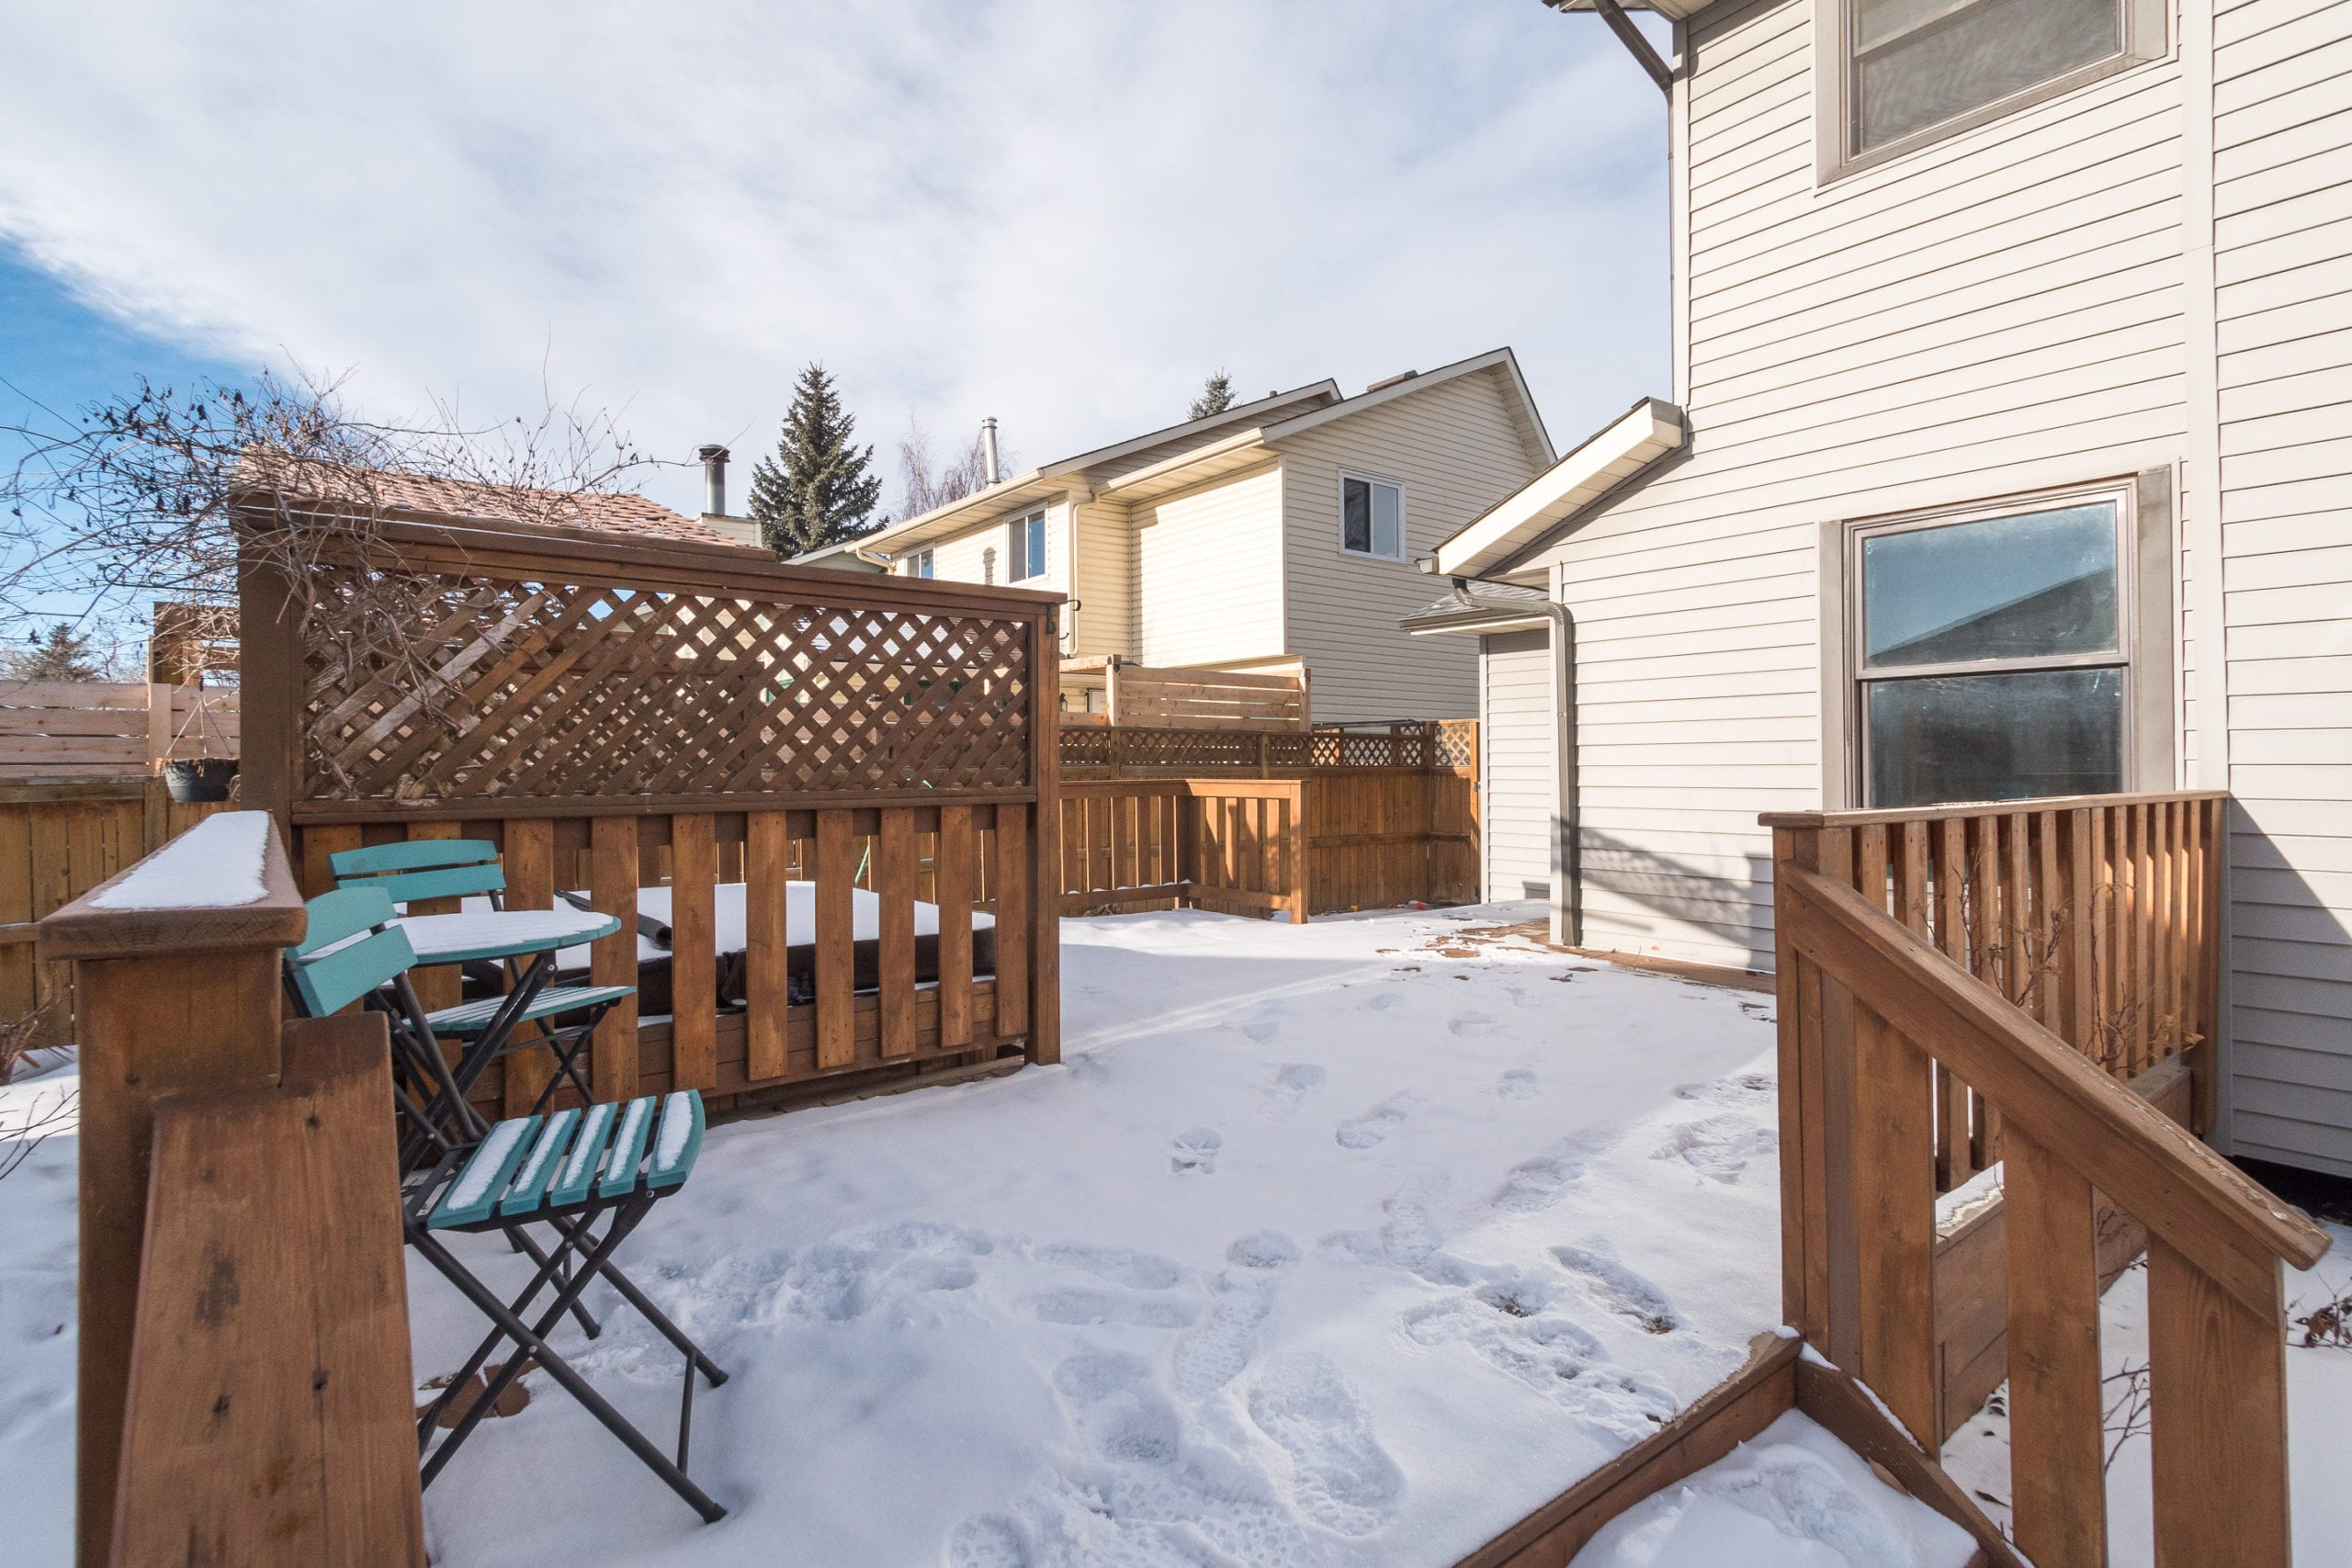 Hello Gorgeous - 4 Mountain Circle Airdrie AB - Tara Molina Real Estate (50 of 50)